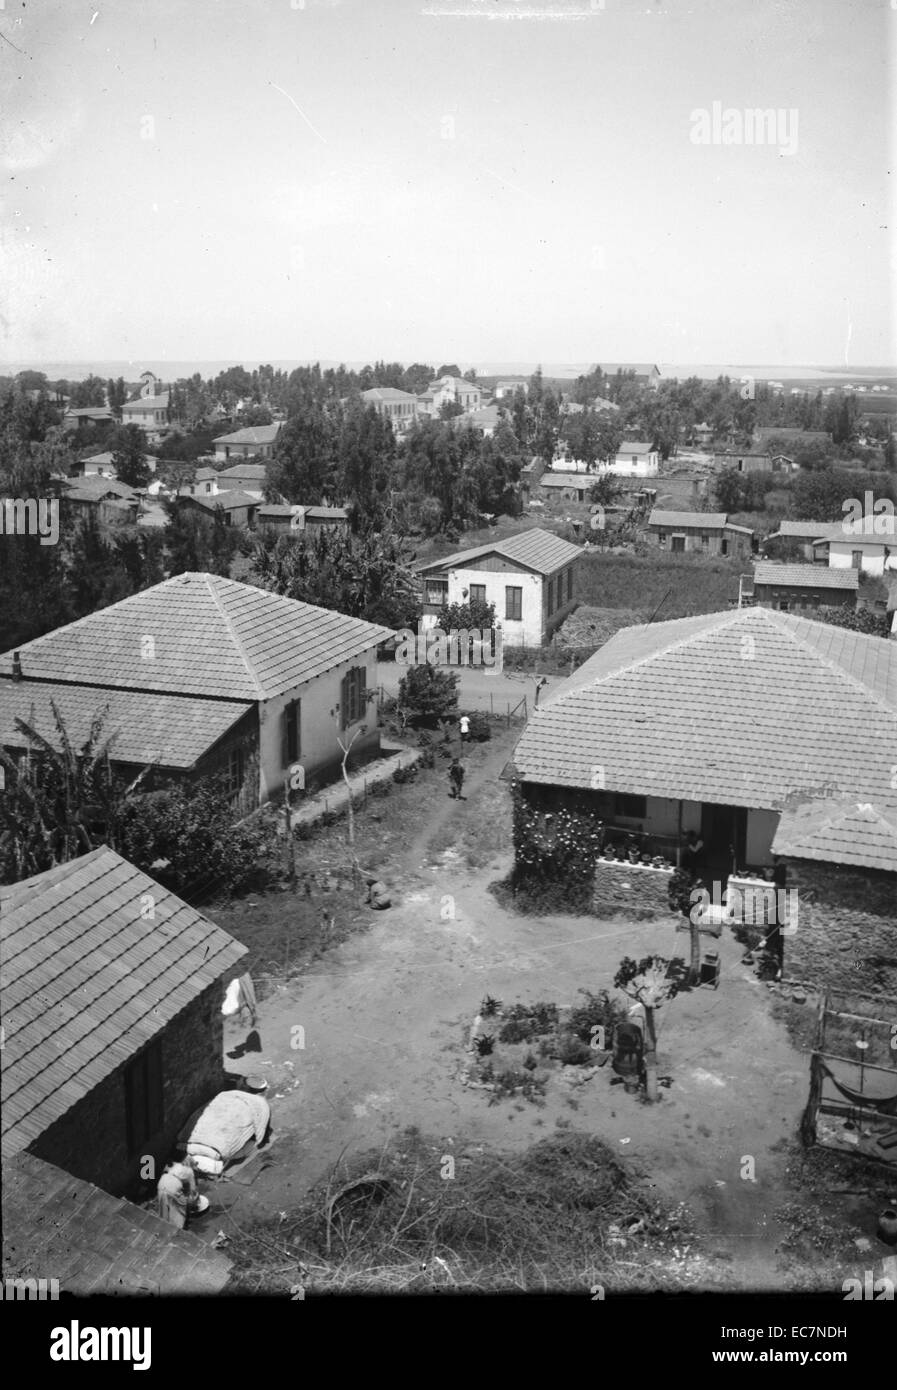 Jewish colonies and settlements - Richon le Zion in Palestine - Stock Image